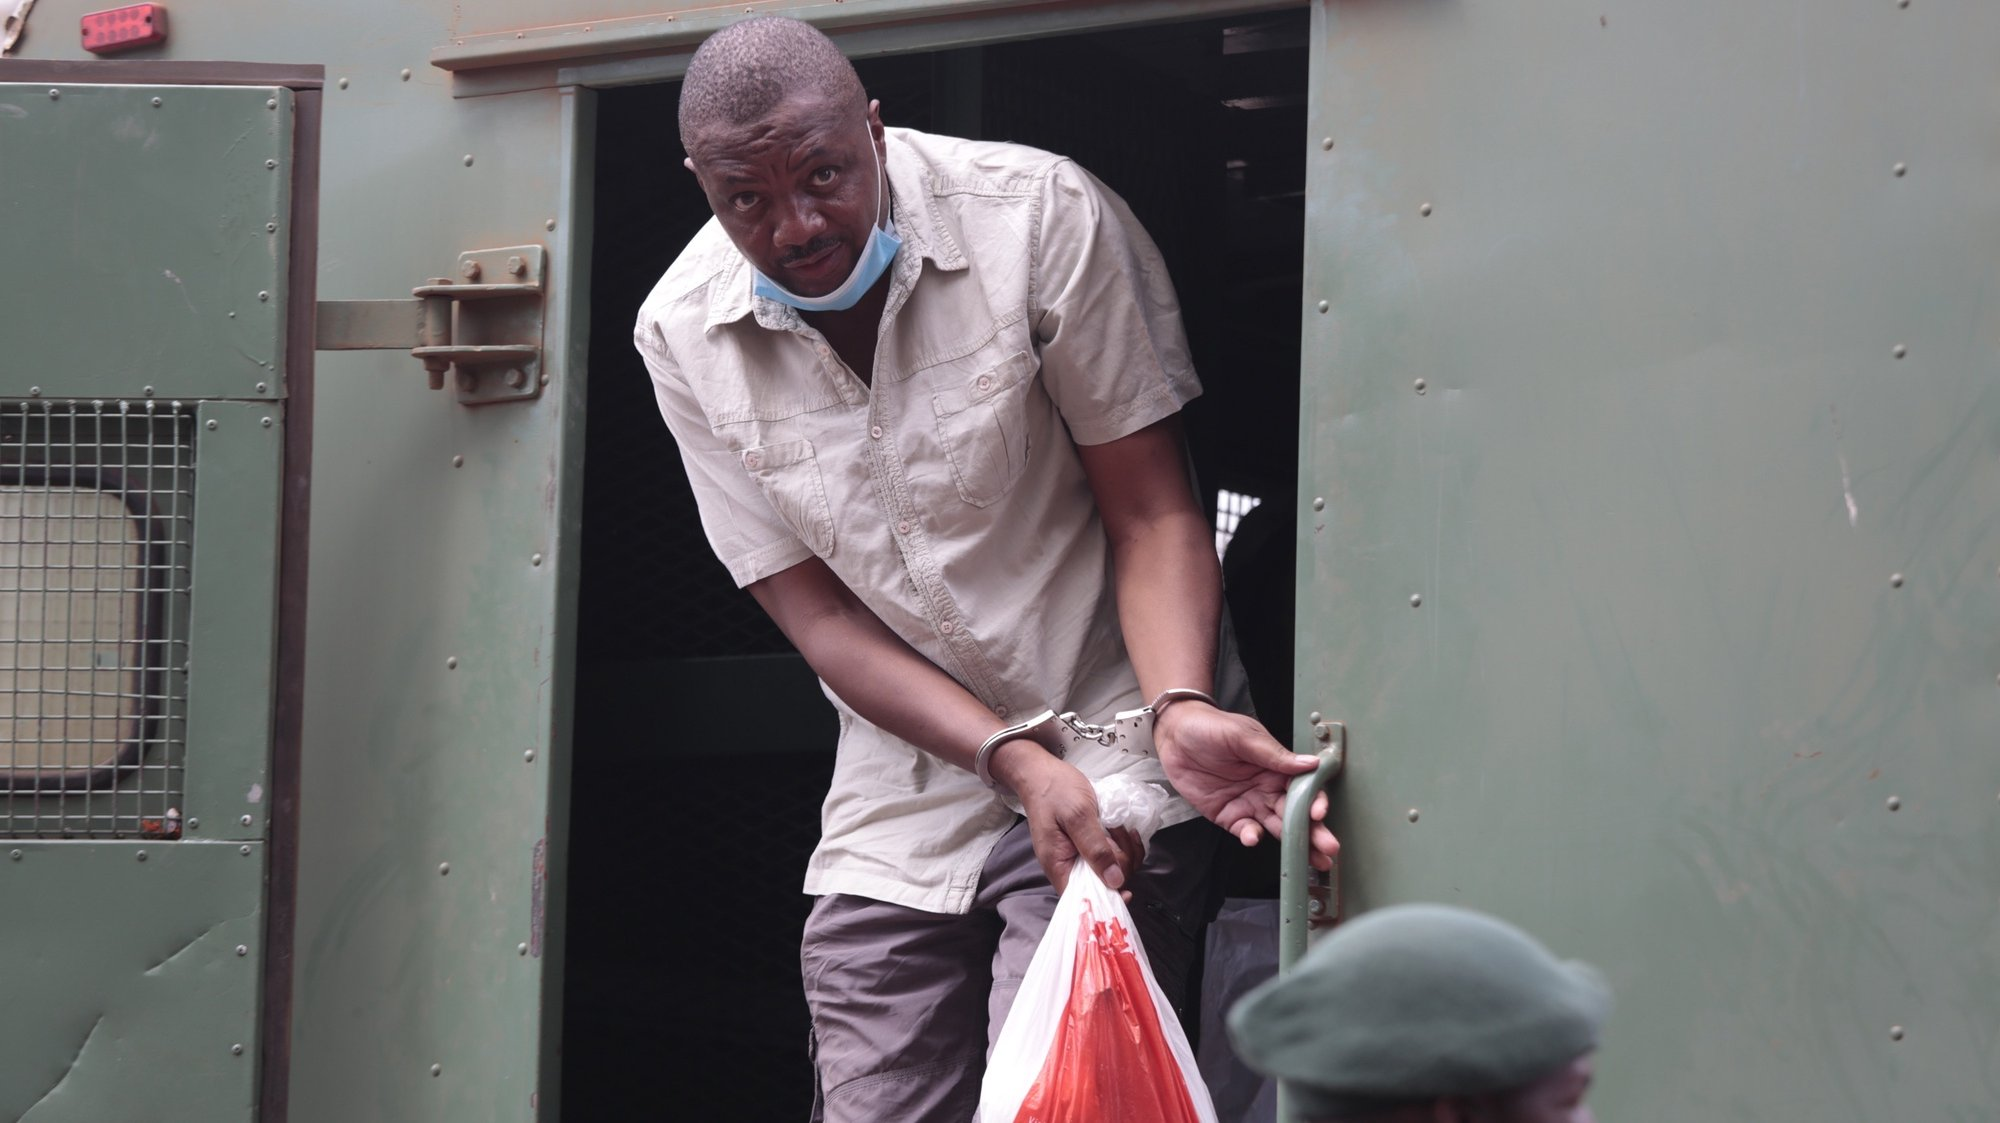 epa08802249 Freelance journalist Hopewell Chin'ono gets off a prisons truck as he arrives in handcuffs and leg irons at the Harare Magistrates Courts in Harare, Zimbabwe, 06 November 2020.  Chin'ono was arrested on 03 November 2020 over allegations of contempt of court according to the police.  EPA/AARON UFUMELI